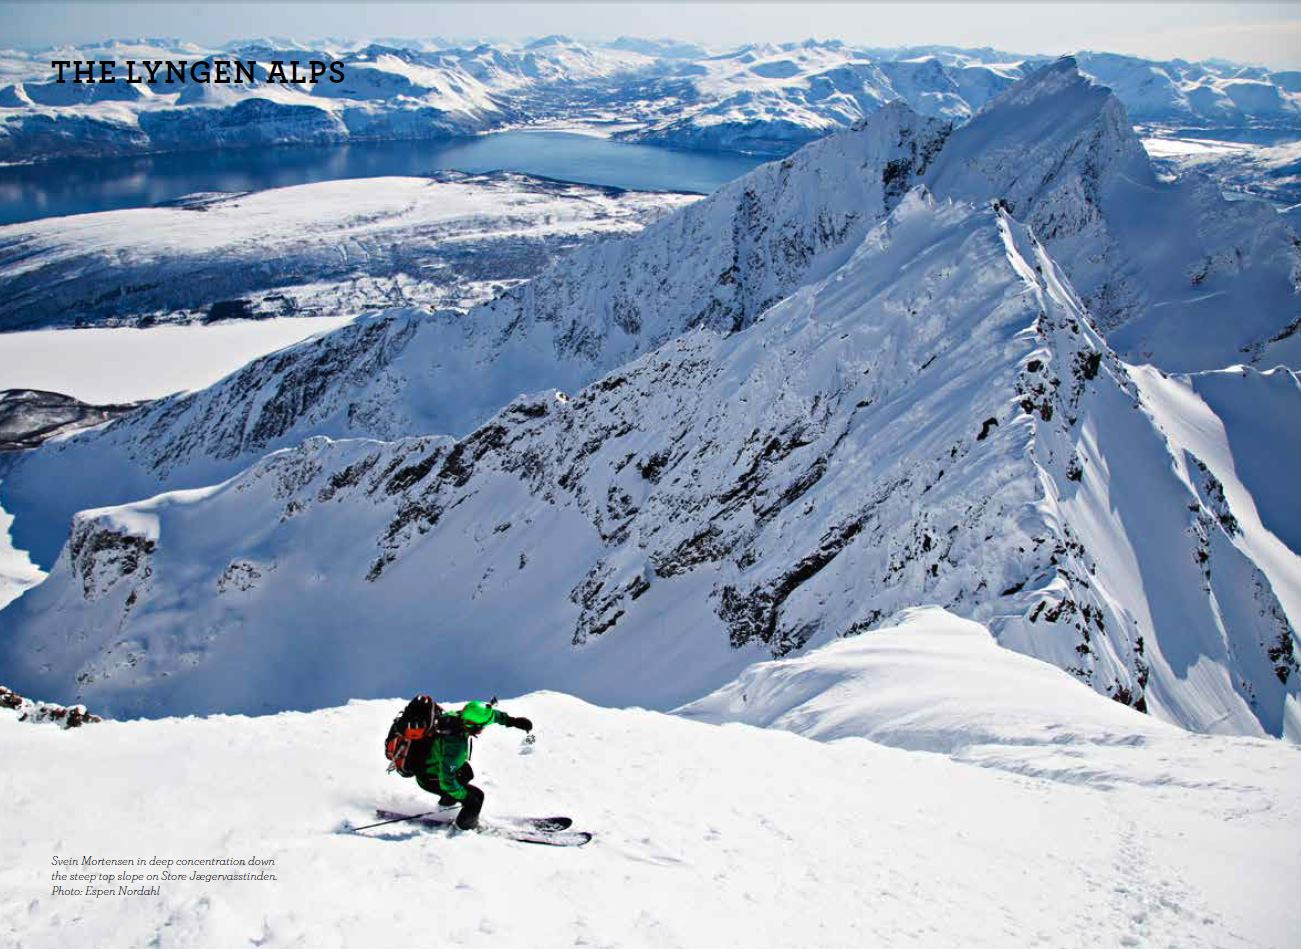 Extract from Ski Touring in Troms